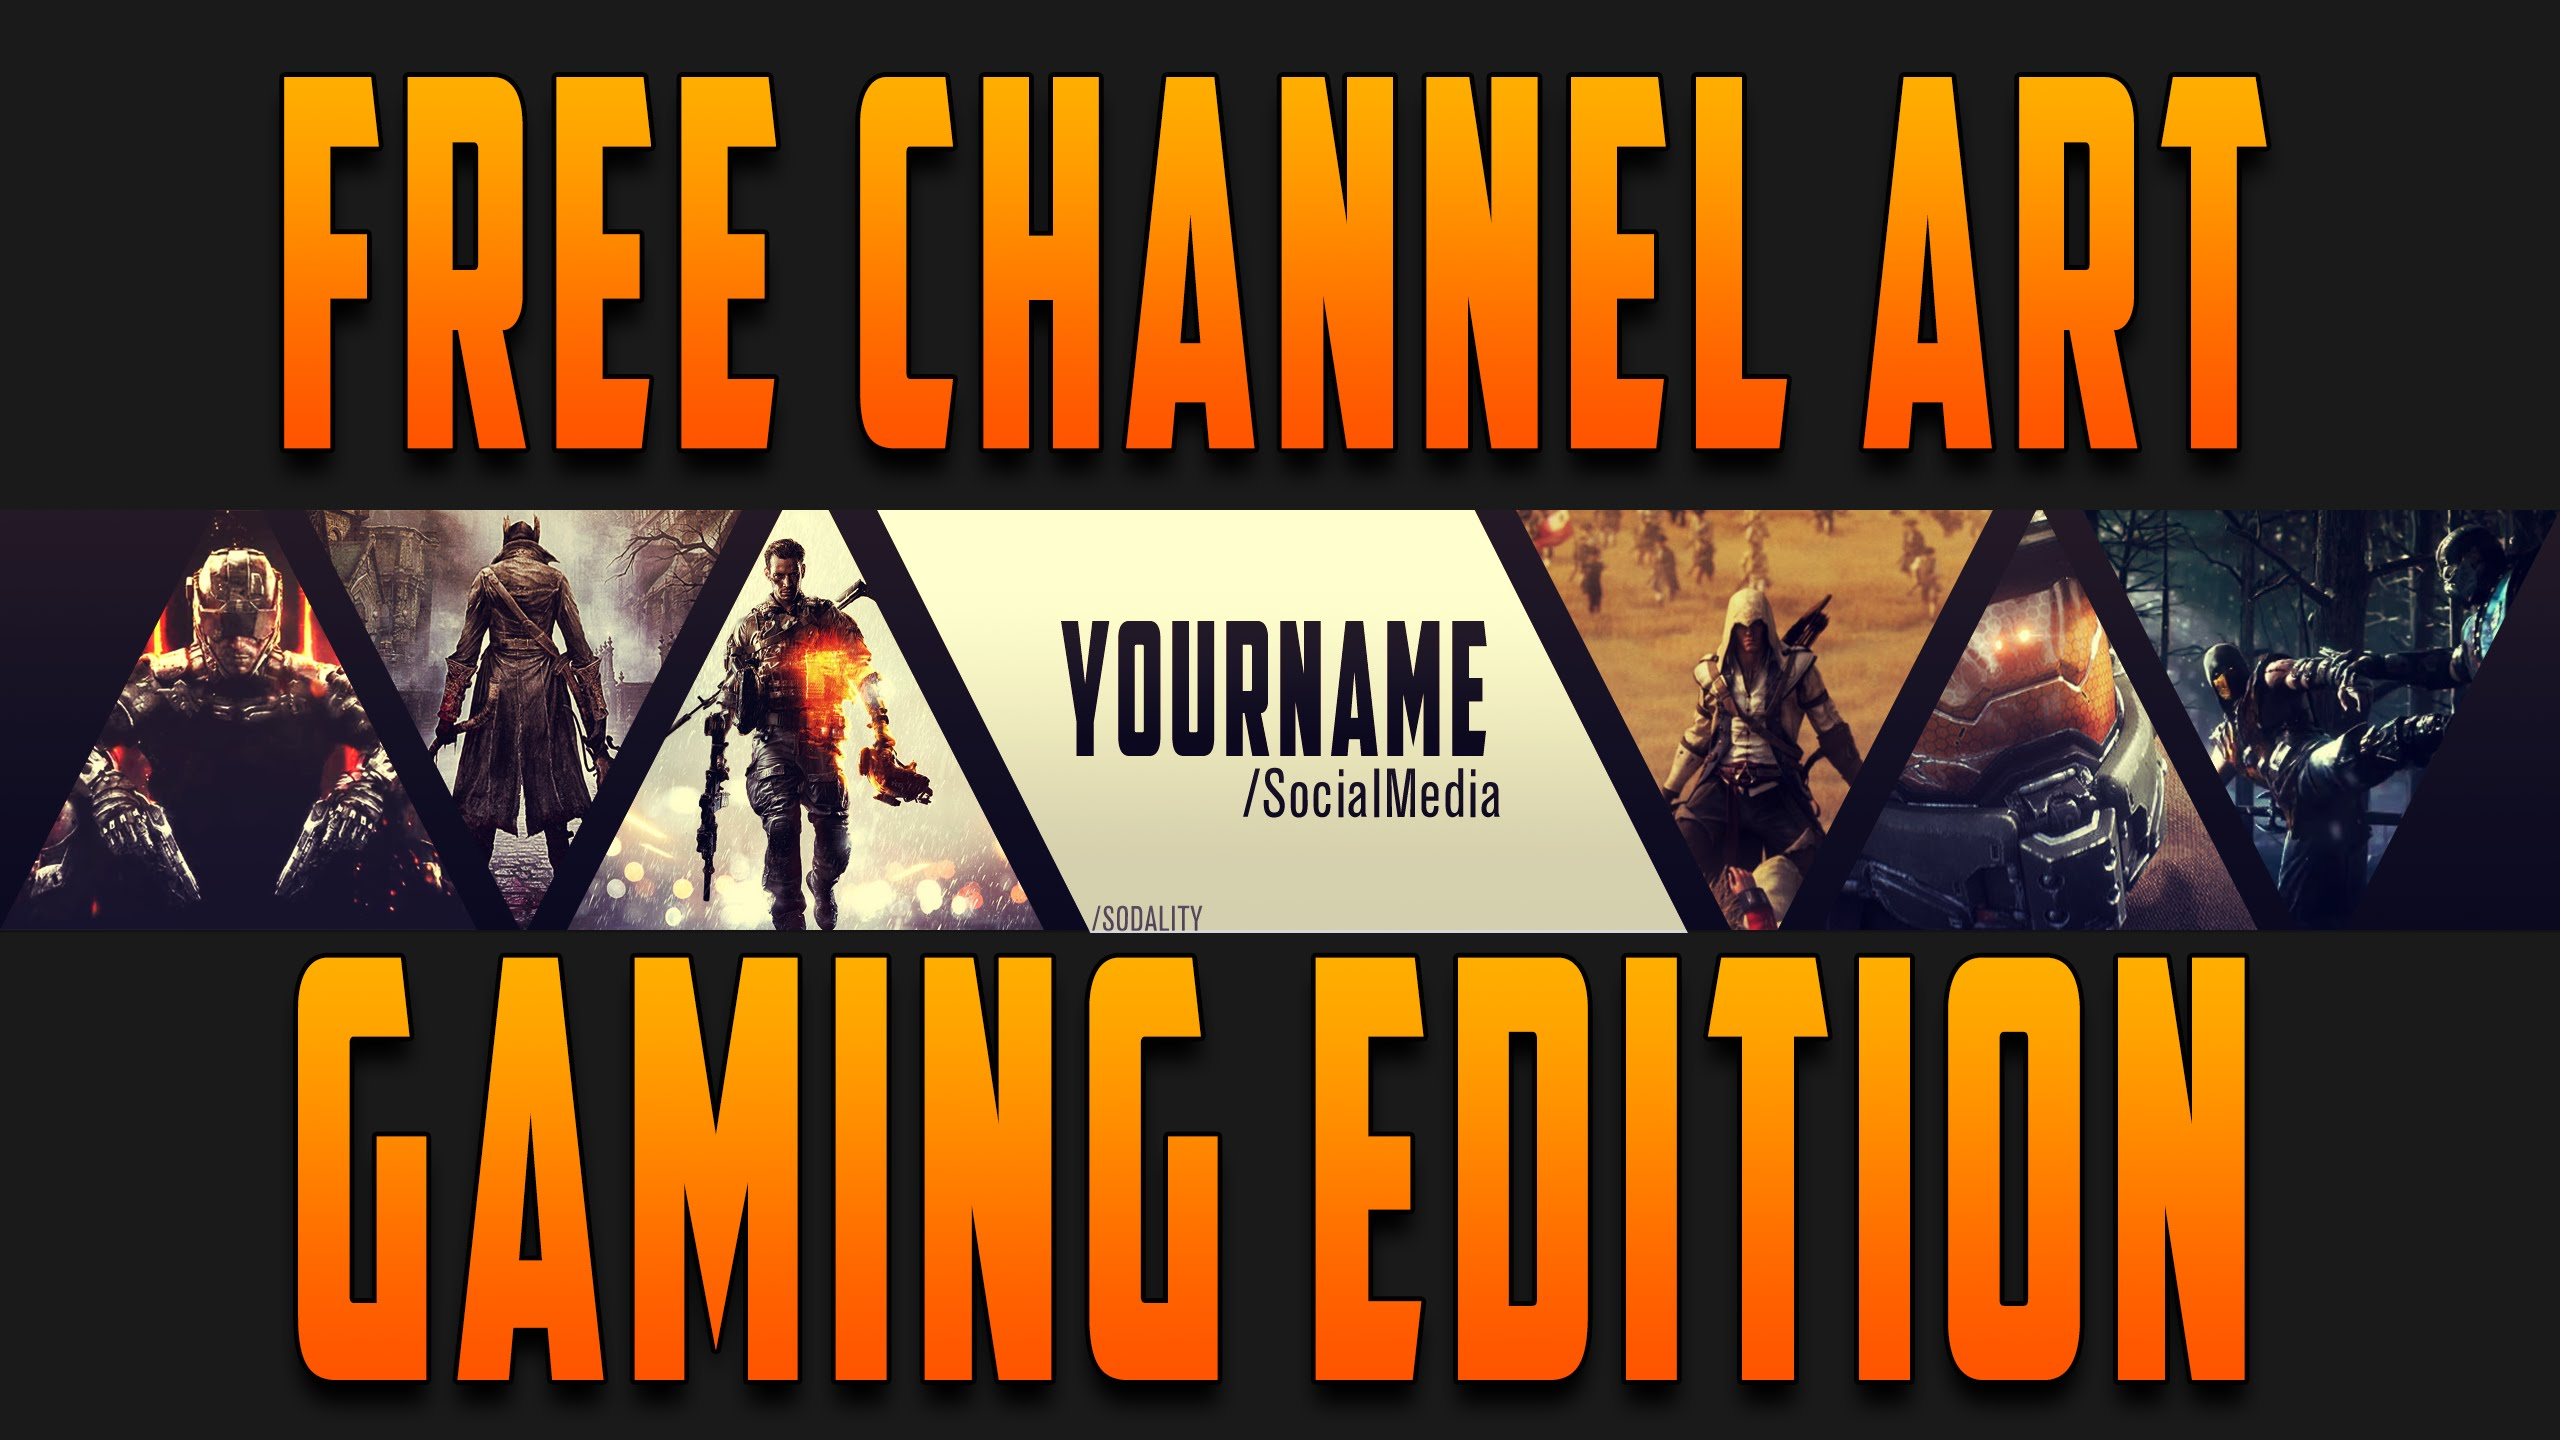 Channel Art For Gaming Channel - HD Wallpaper